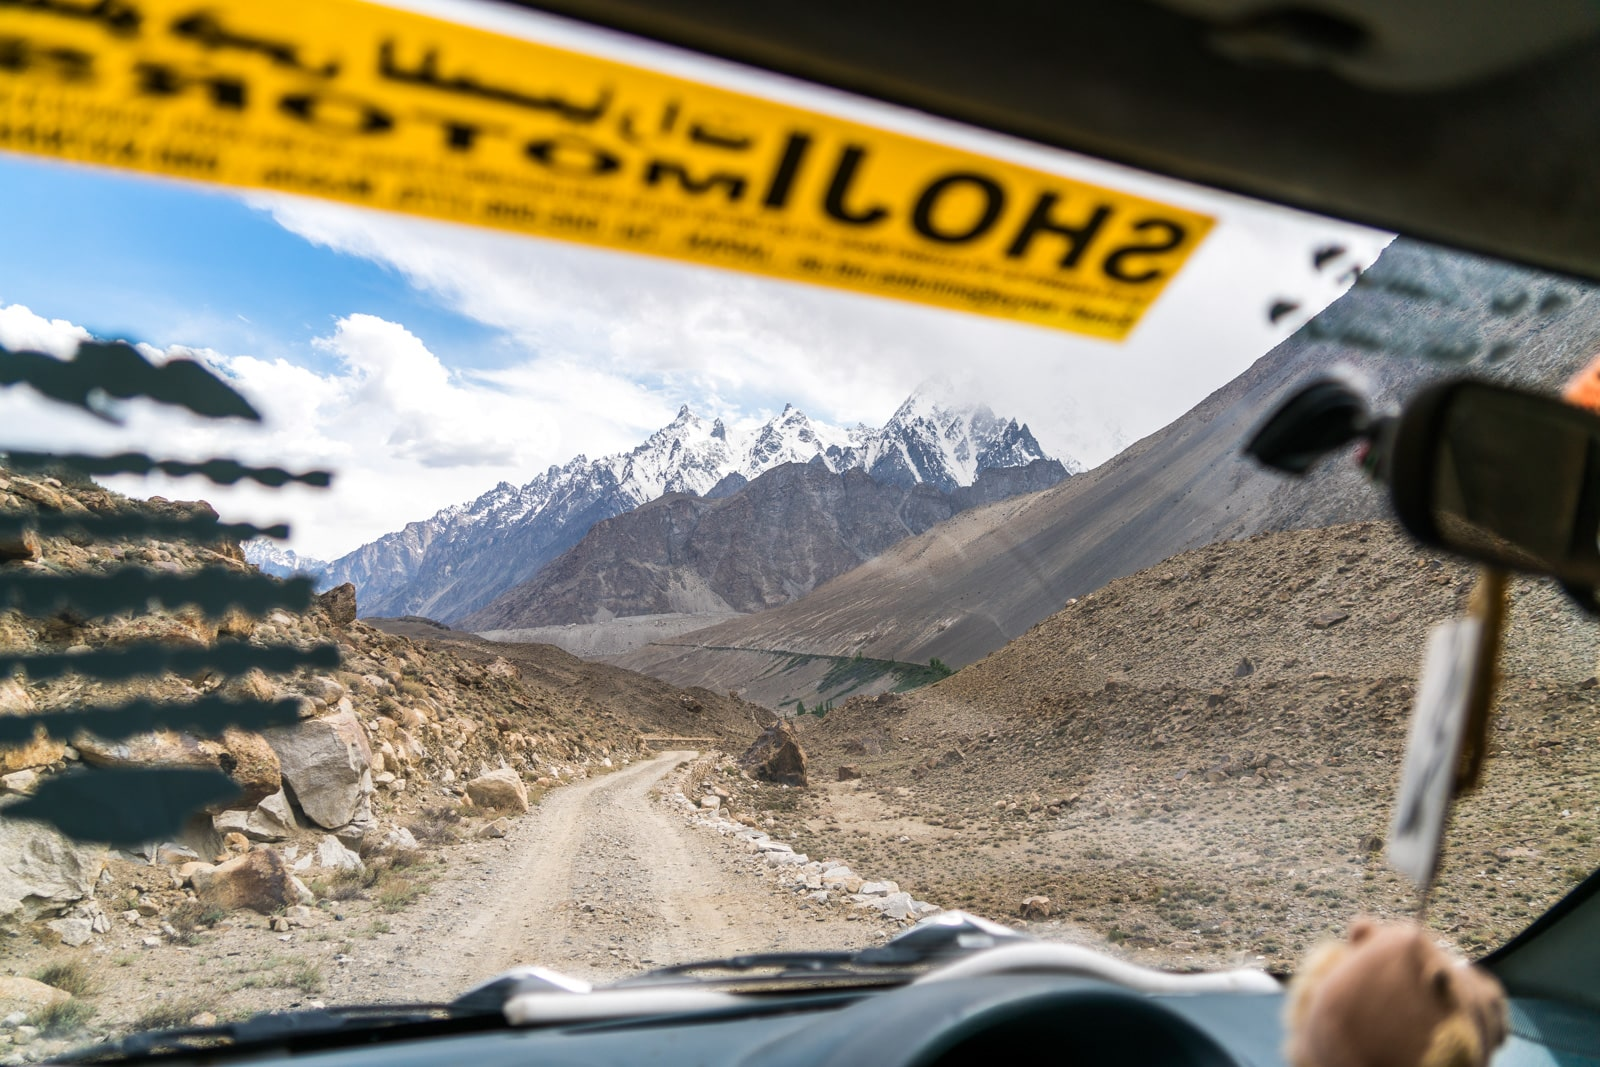 Homestay in Pakistan - Rehman driving to the white glacier - Lost With Purpose travel blog